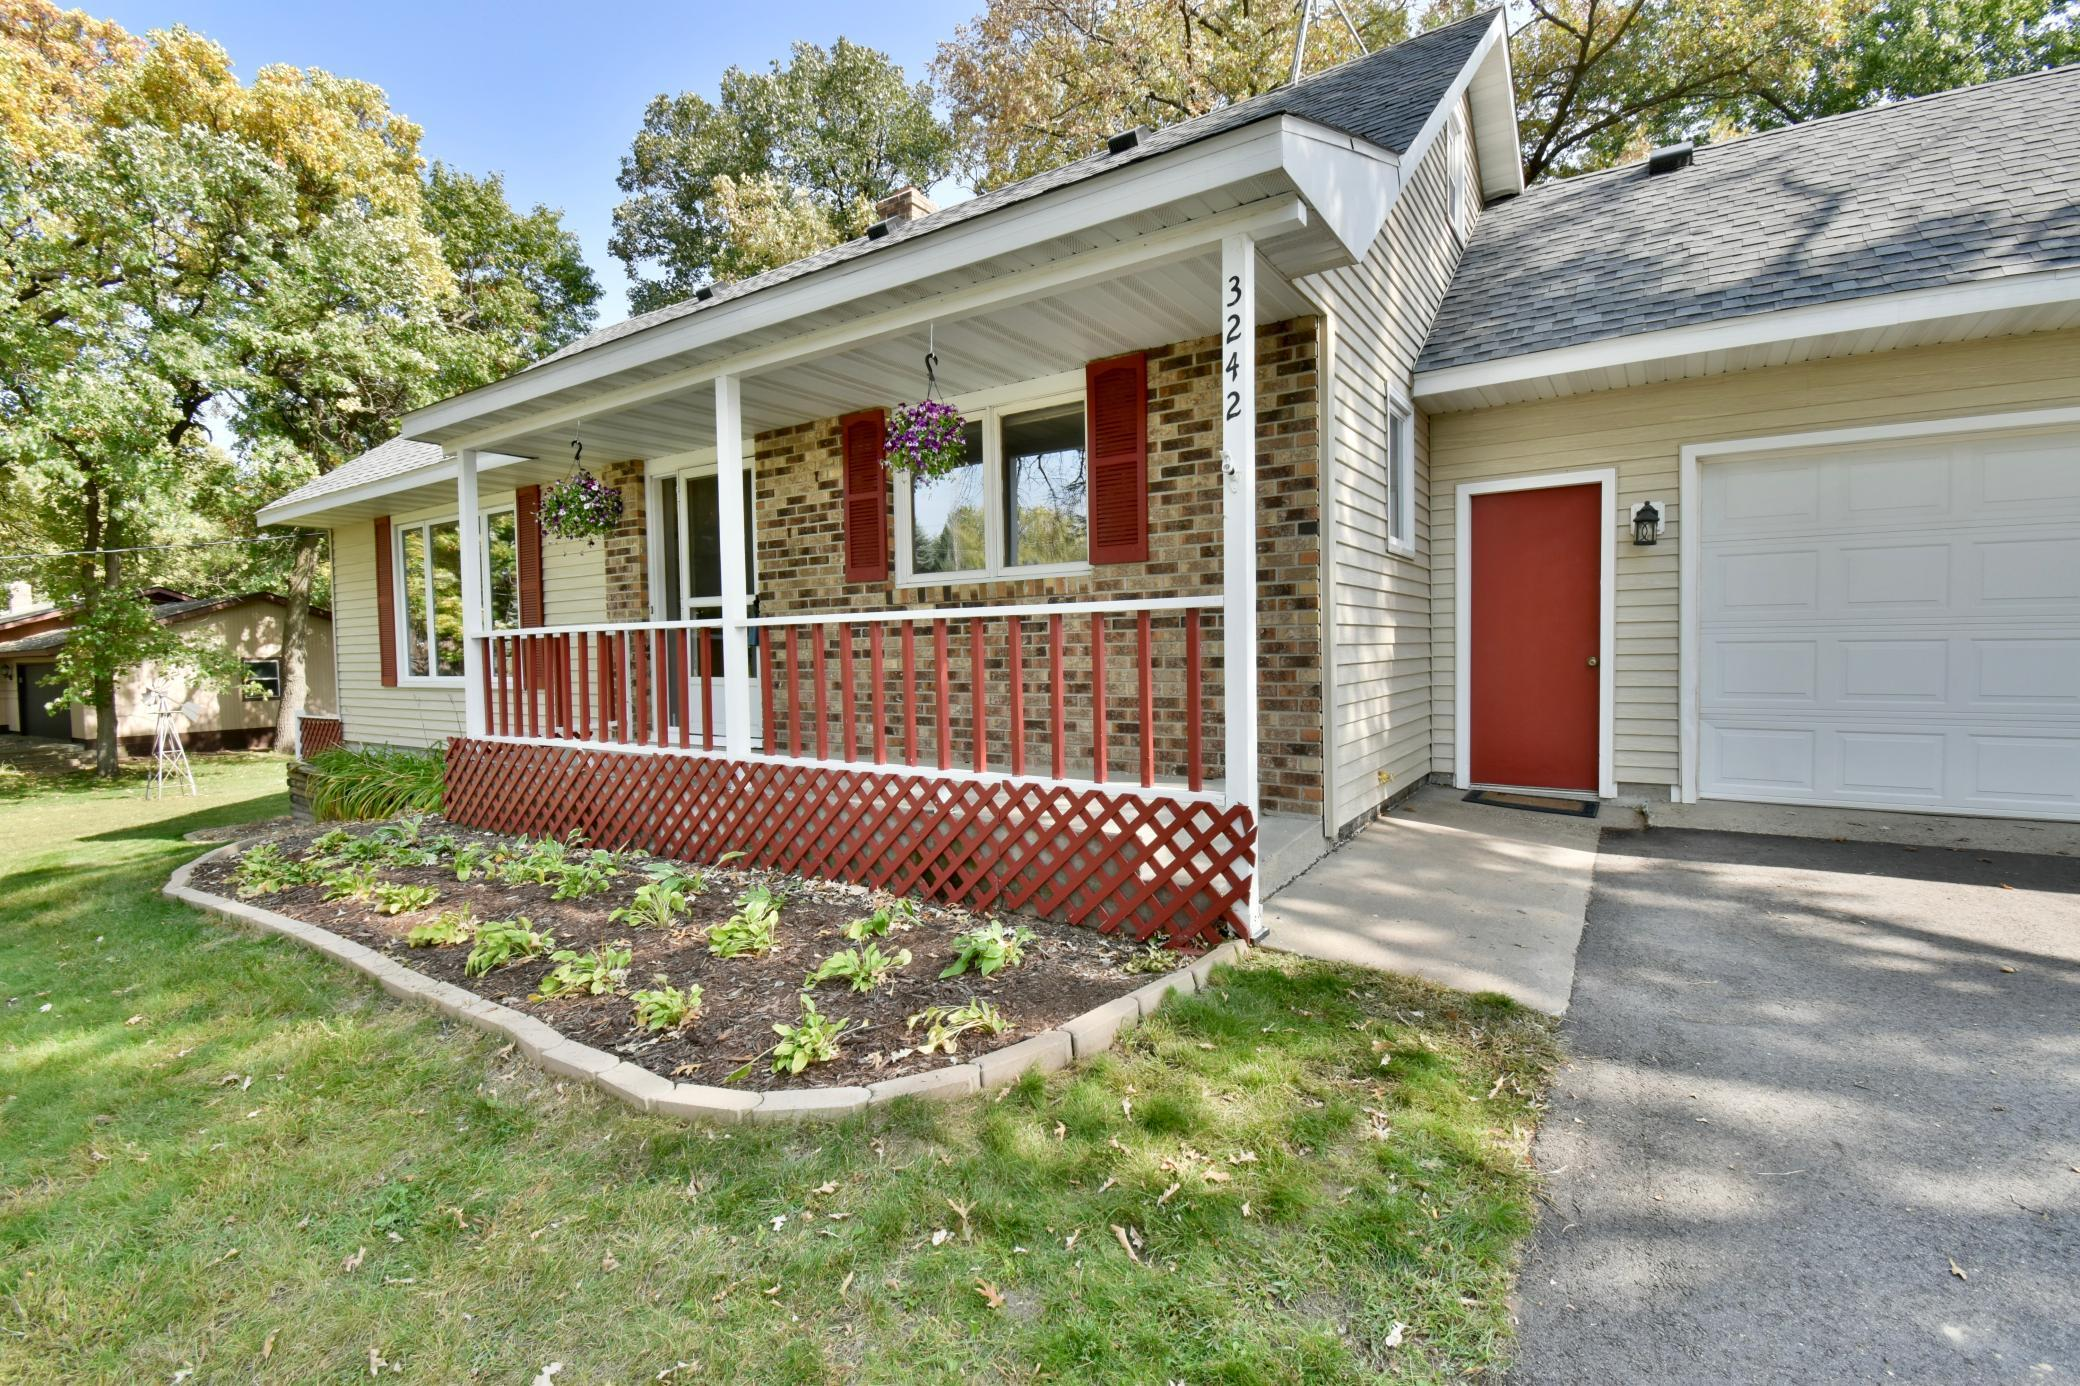 Back on market- new carpet and painting in lower level, Oct 2020! Incredible home with an exceptional floor plan on a fantastic wooded lot. So many improvements - new roof, beautiful new laminate flooring, new water heater (all 2019), brand new stainless appliances, fresh paint (2020).